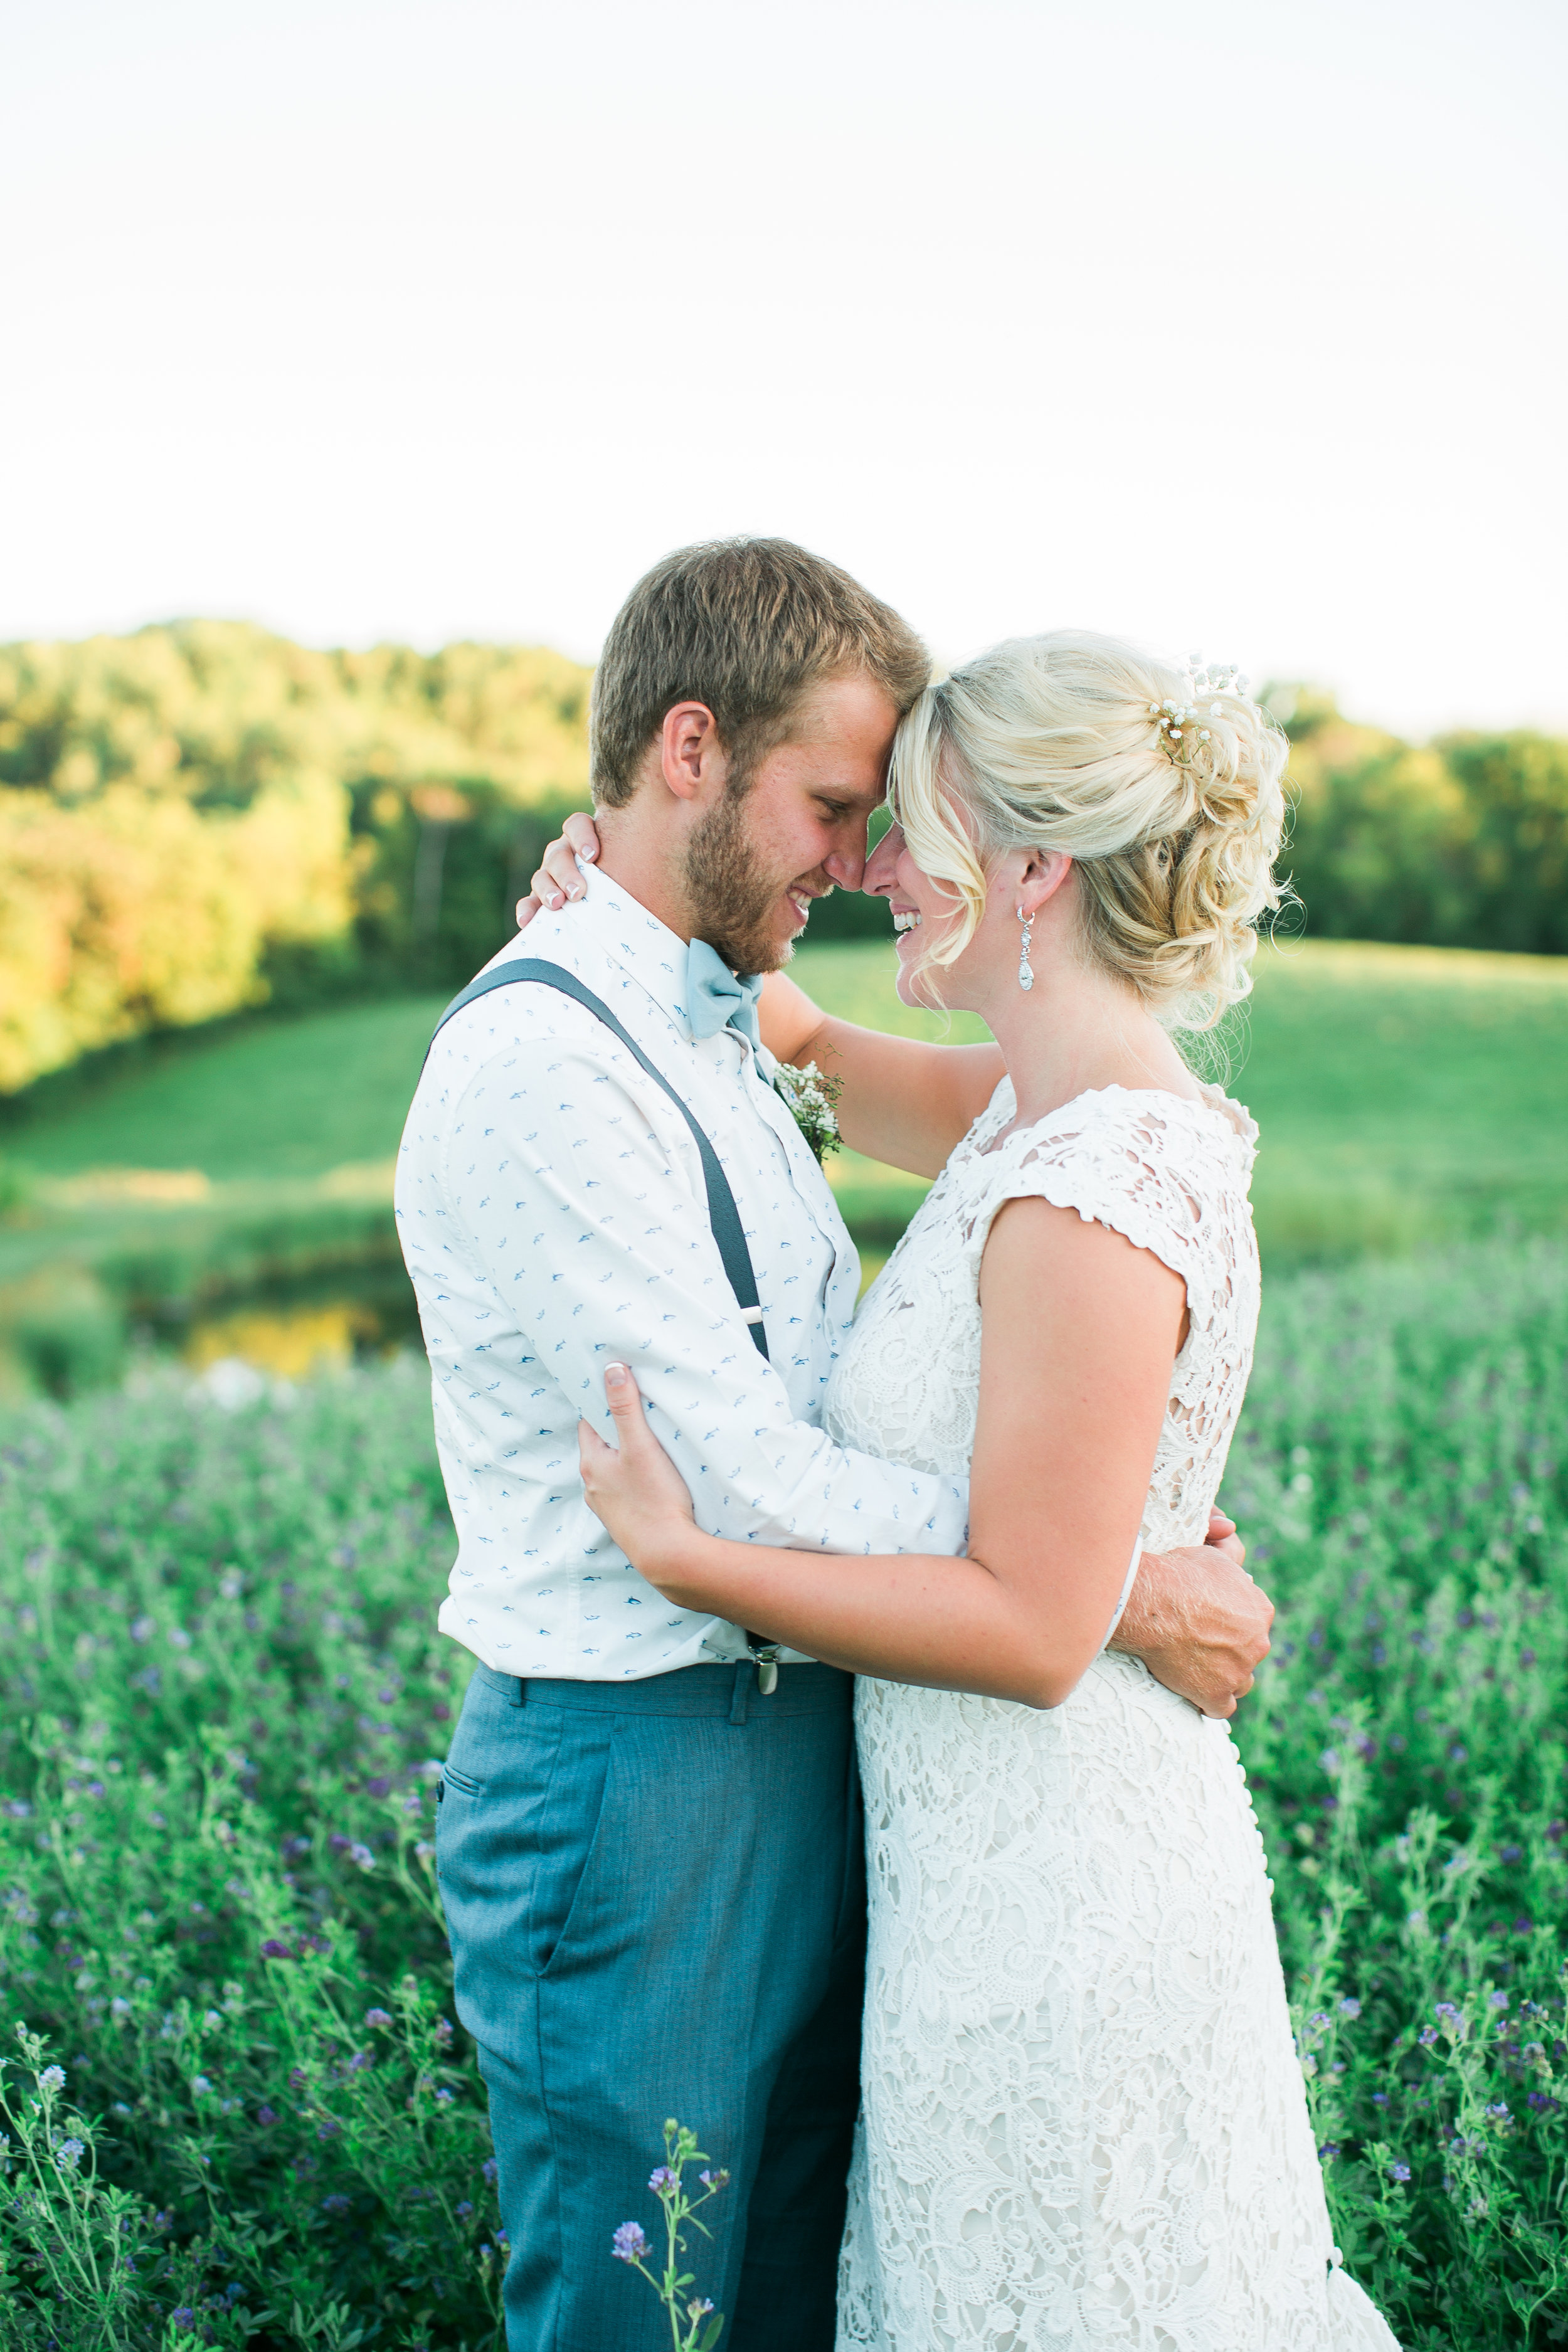 Bride and groom portrait in a field of flowers at The Outpost Center in Chaska Minnesota for rustic rural wedding